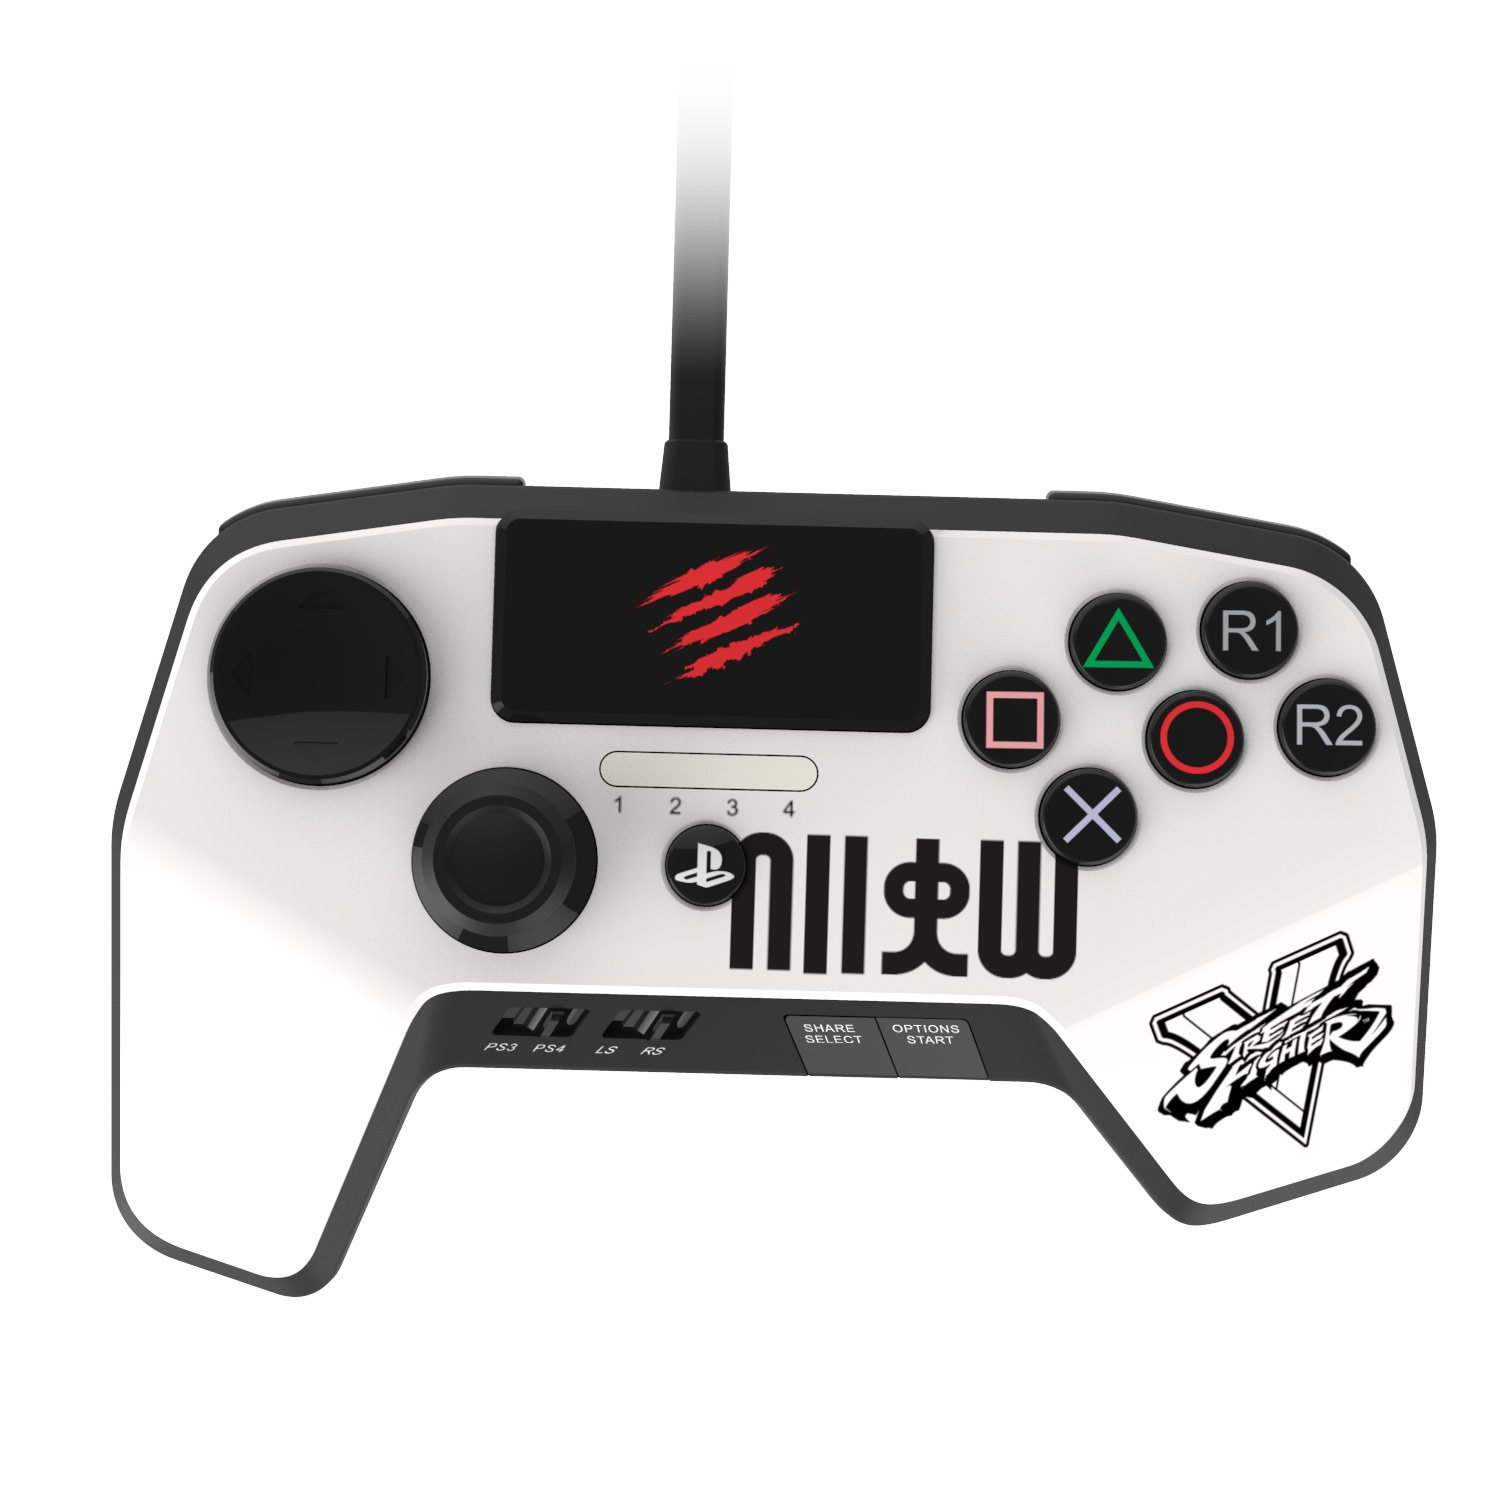 Mad Catz Street Fighter V FightPad PRO for PlayStation4 and PlayStation3 - White by Mad Catz: Amazon.es: Videojuegos